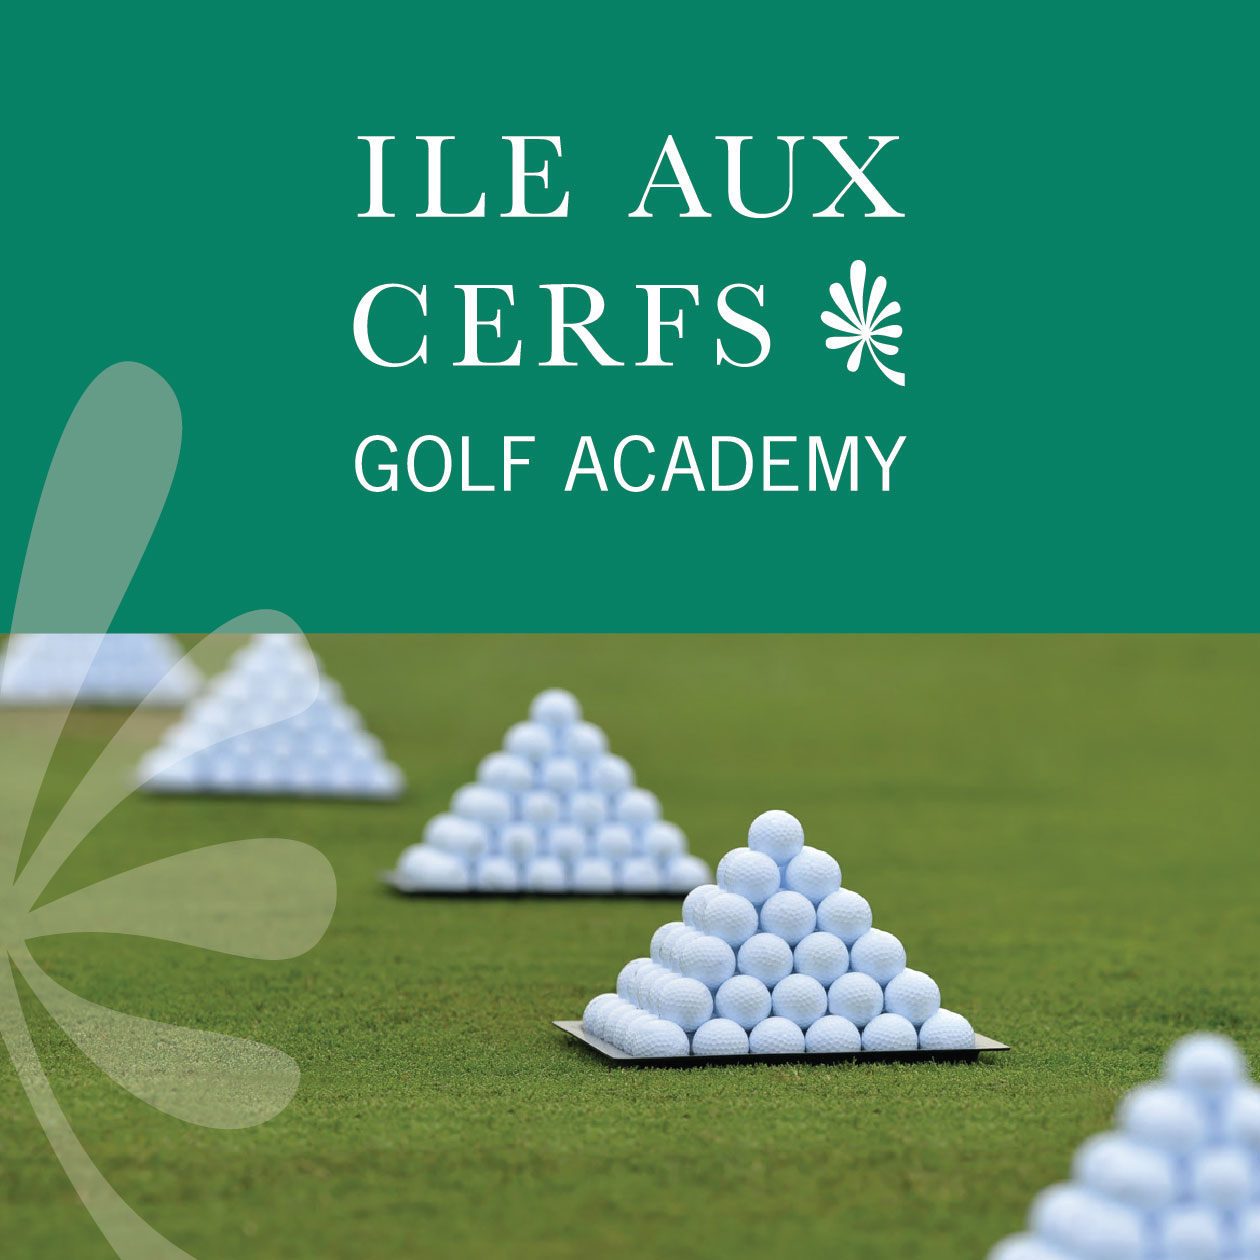 DOWNLOAD OUR GOLF ACADEMY BROCHURE